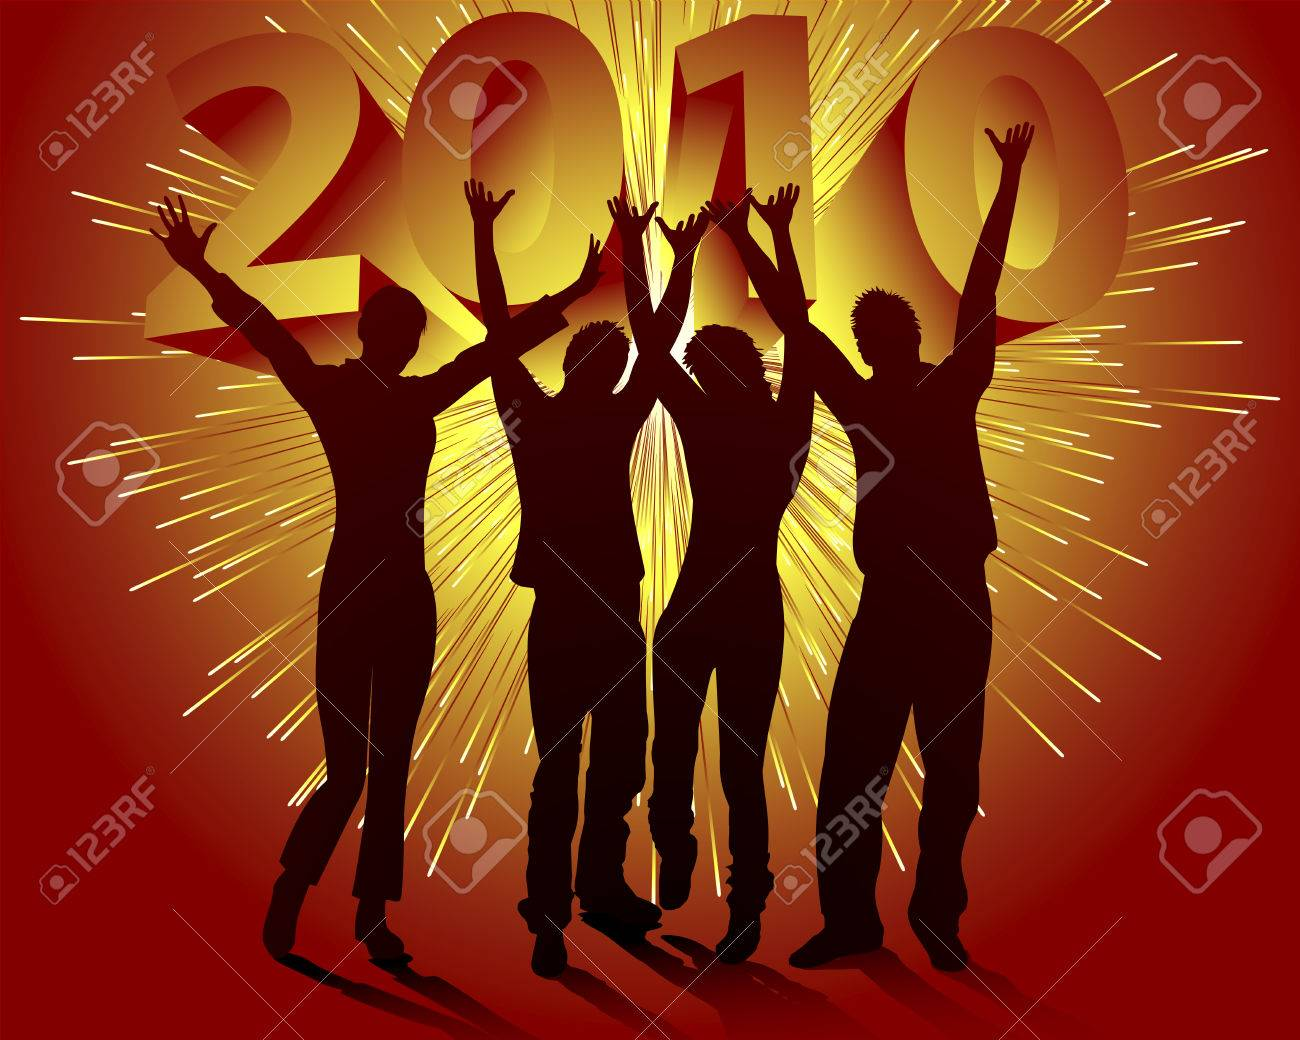 New Year's Eve 2010 Stock Vector - 5692632